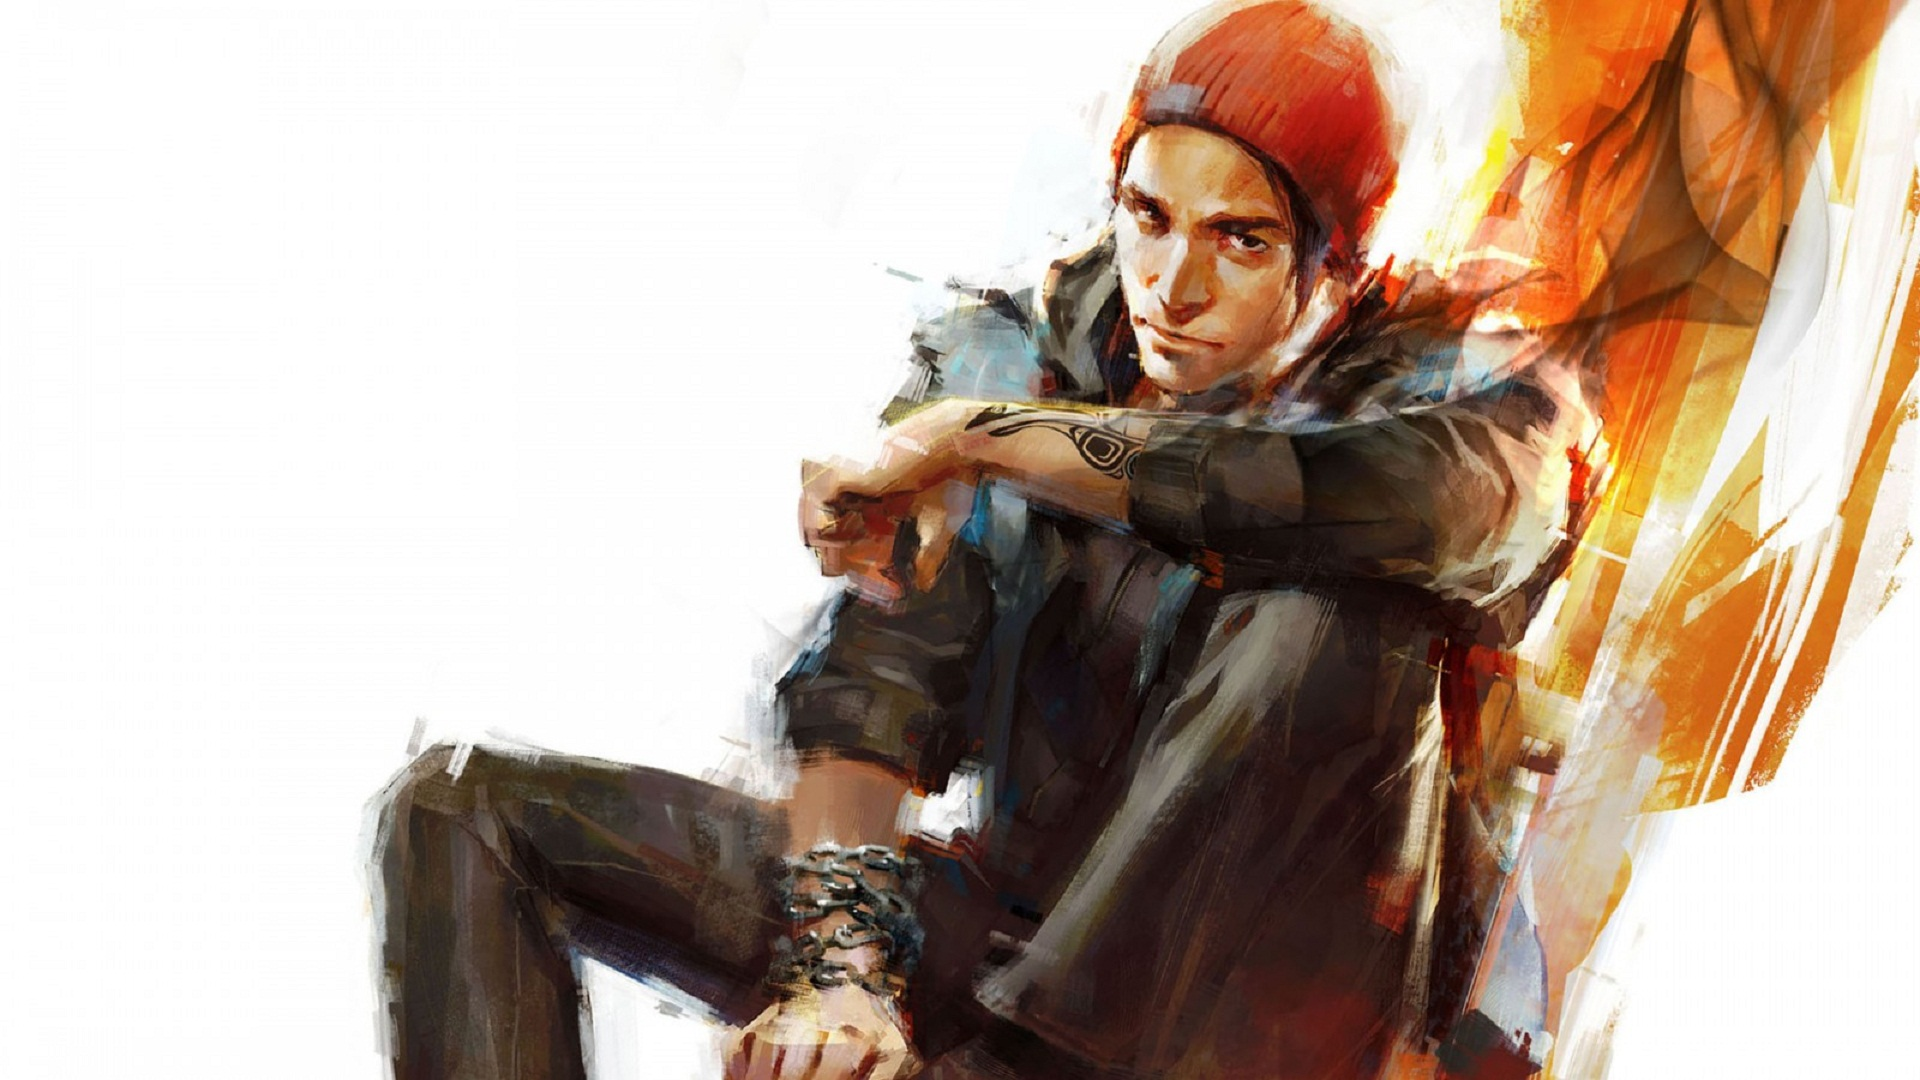 Delsin-Rowe-Infamous-Second-Son-Game-HD-Wallpaper